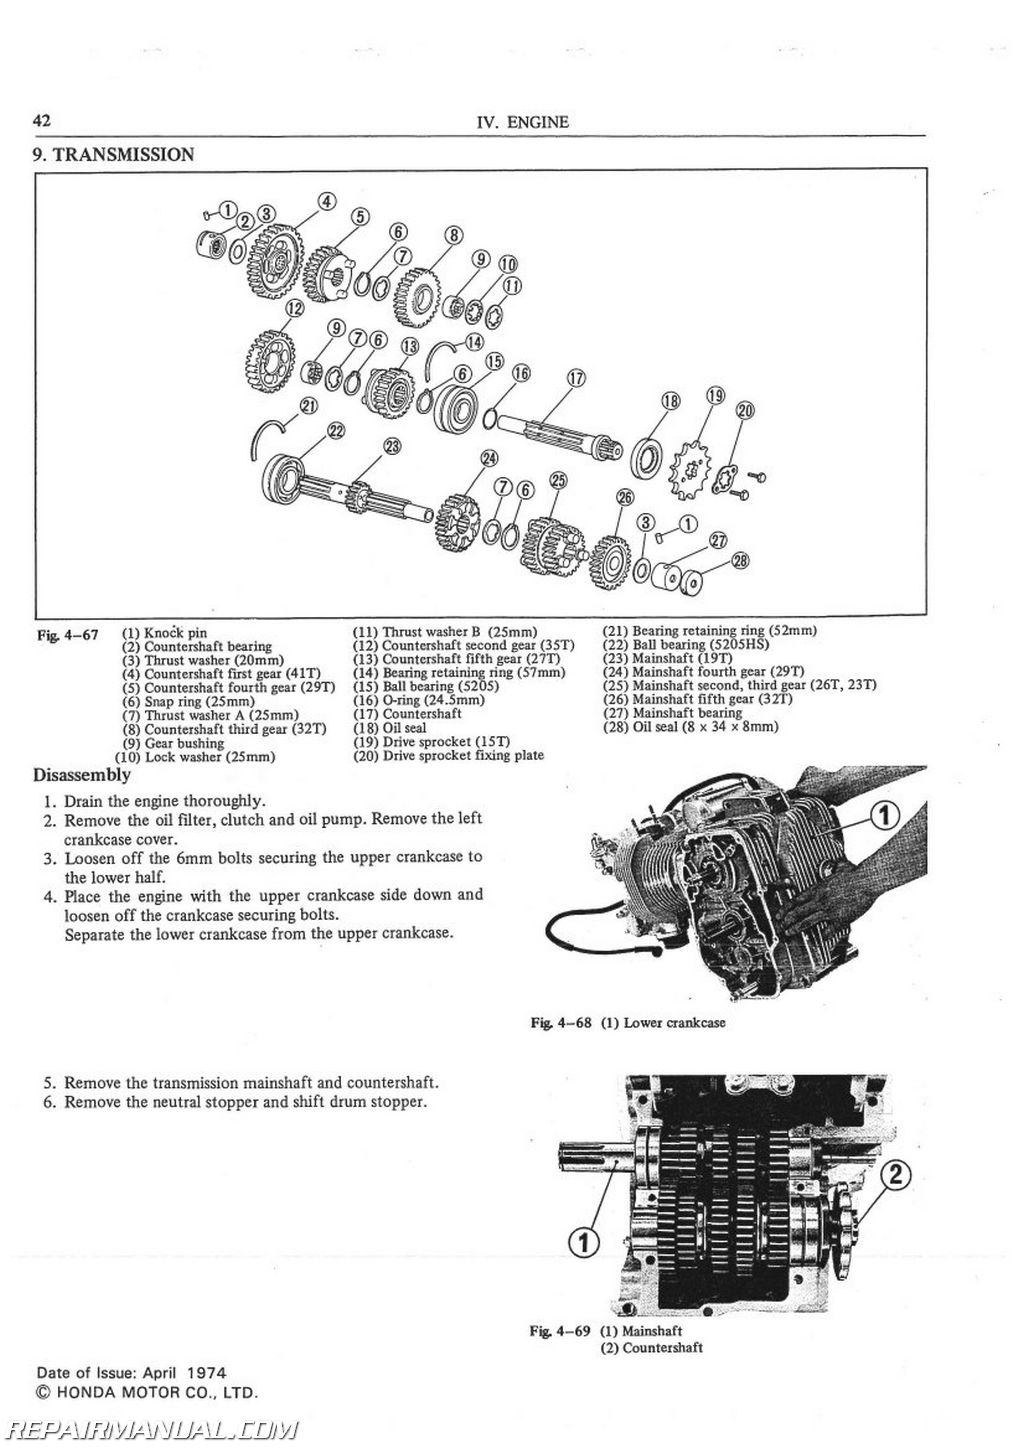 Honda Cb500t Motorcycle Service Manual